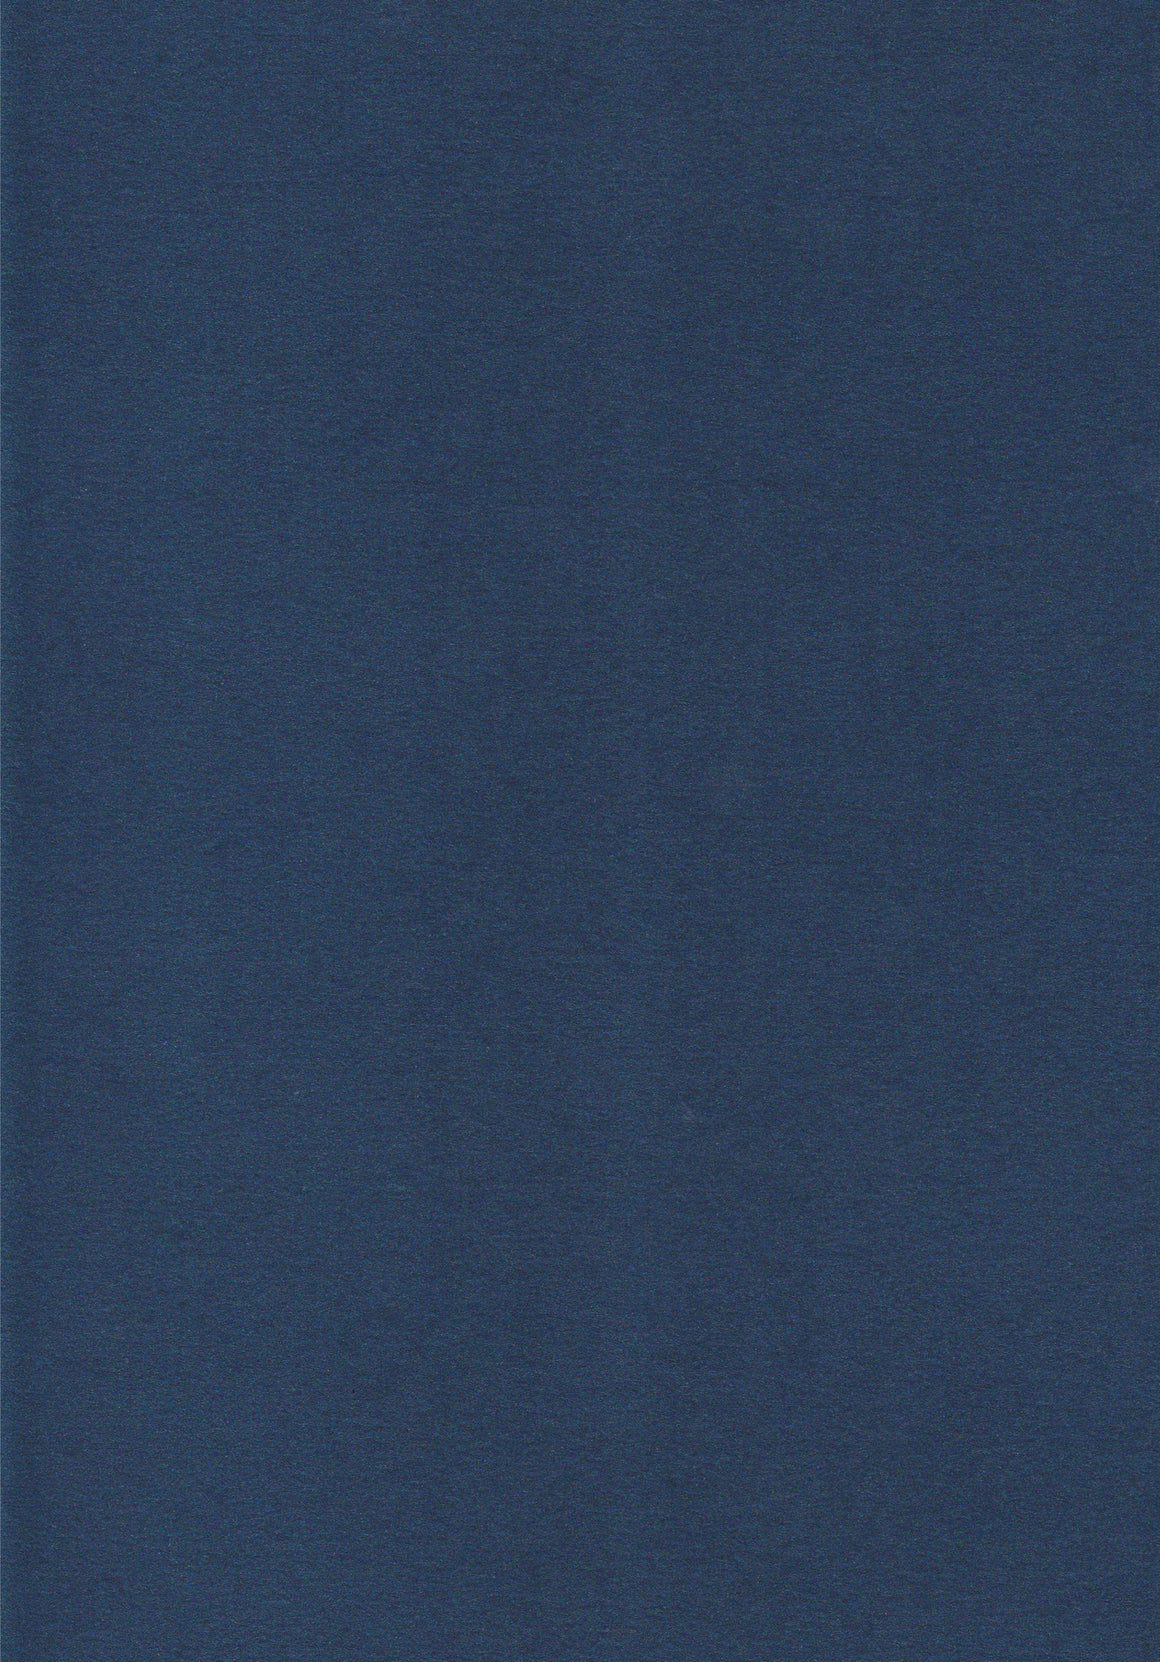 Metallic Navy A4 Card